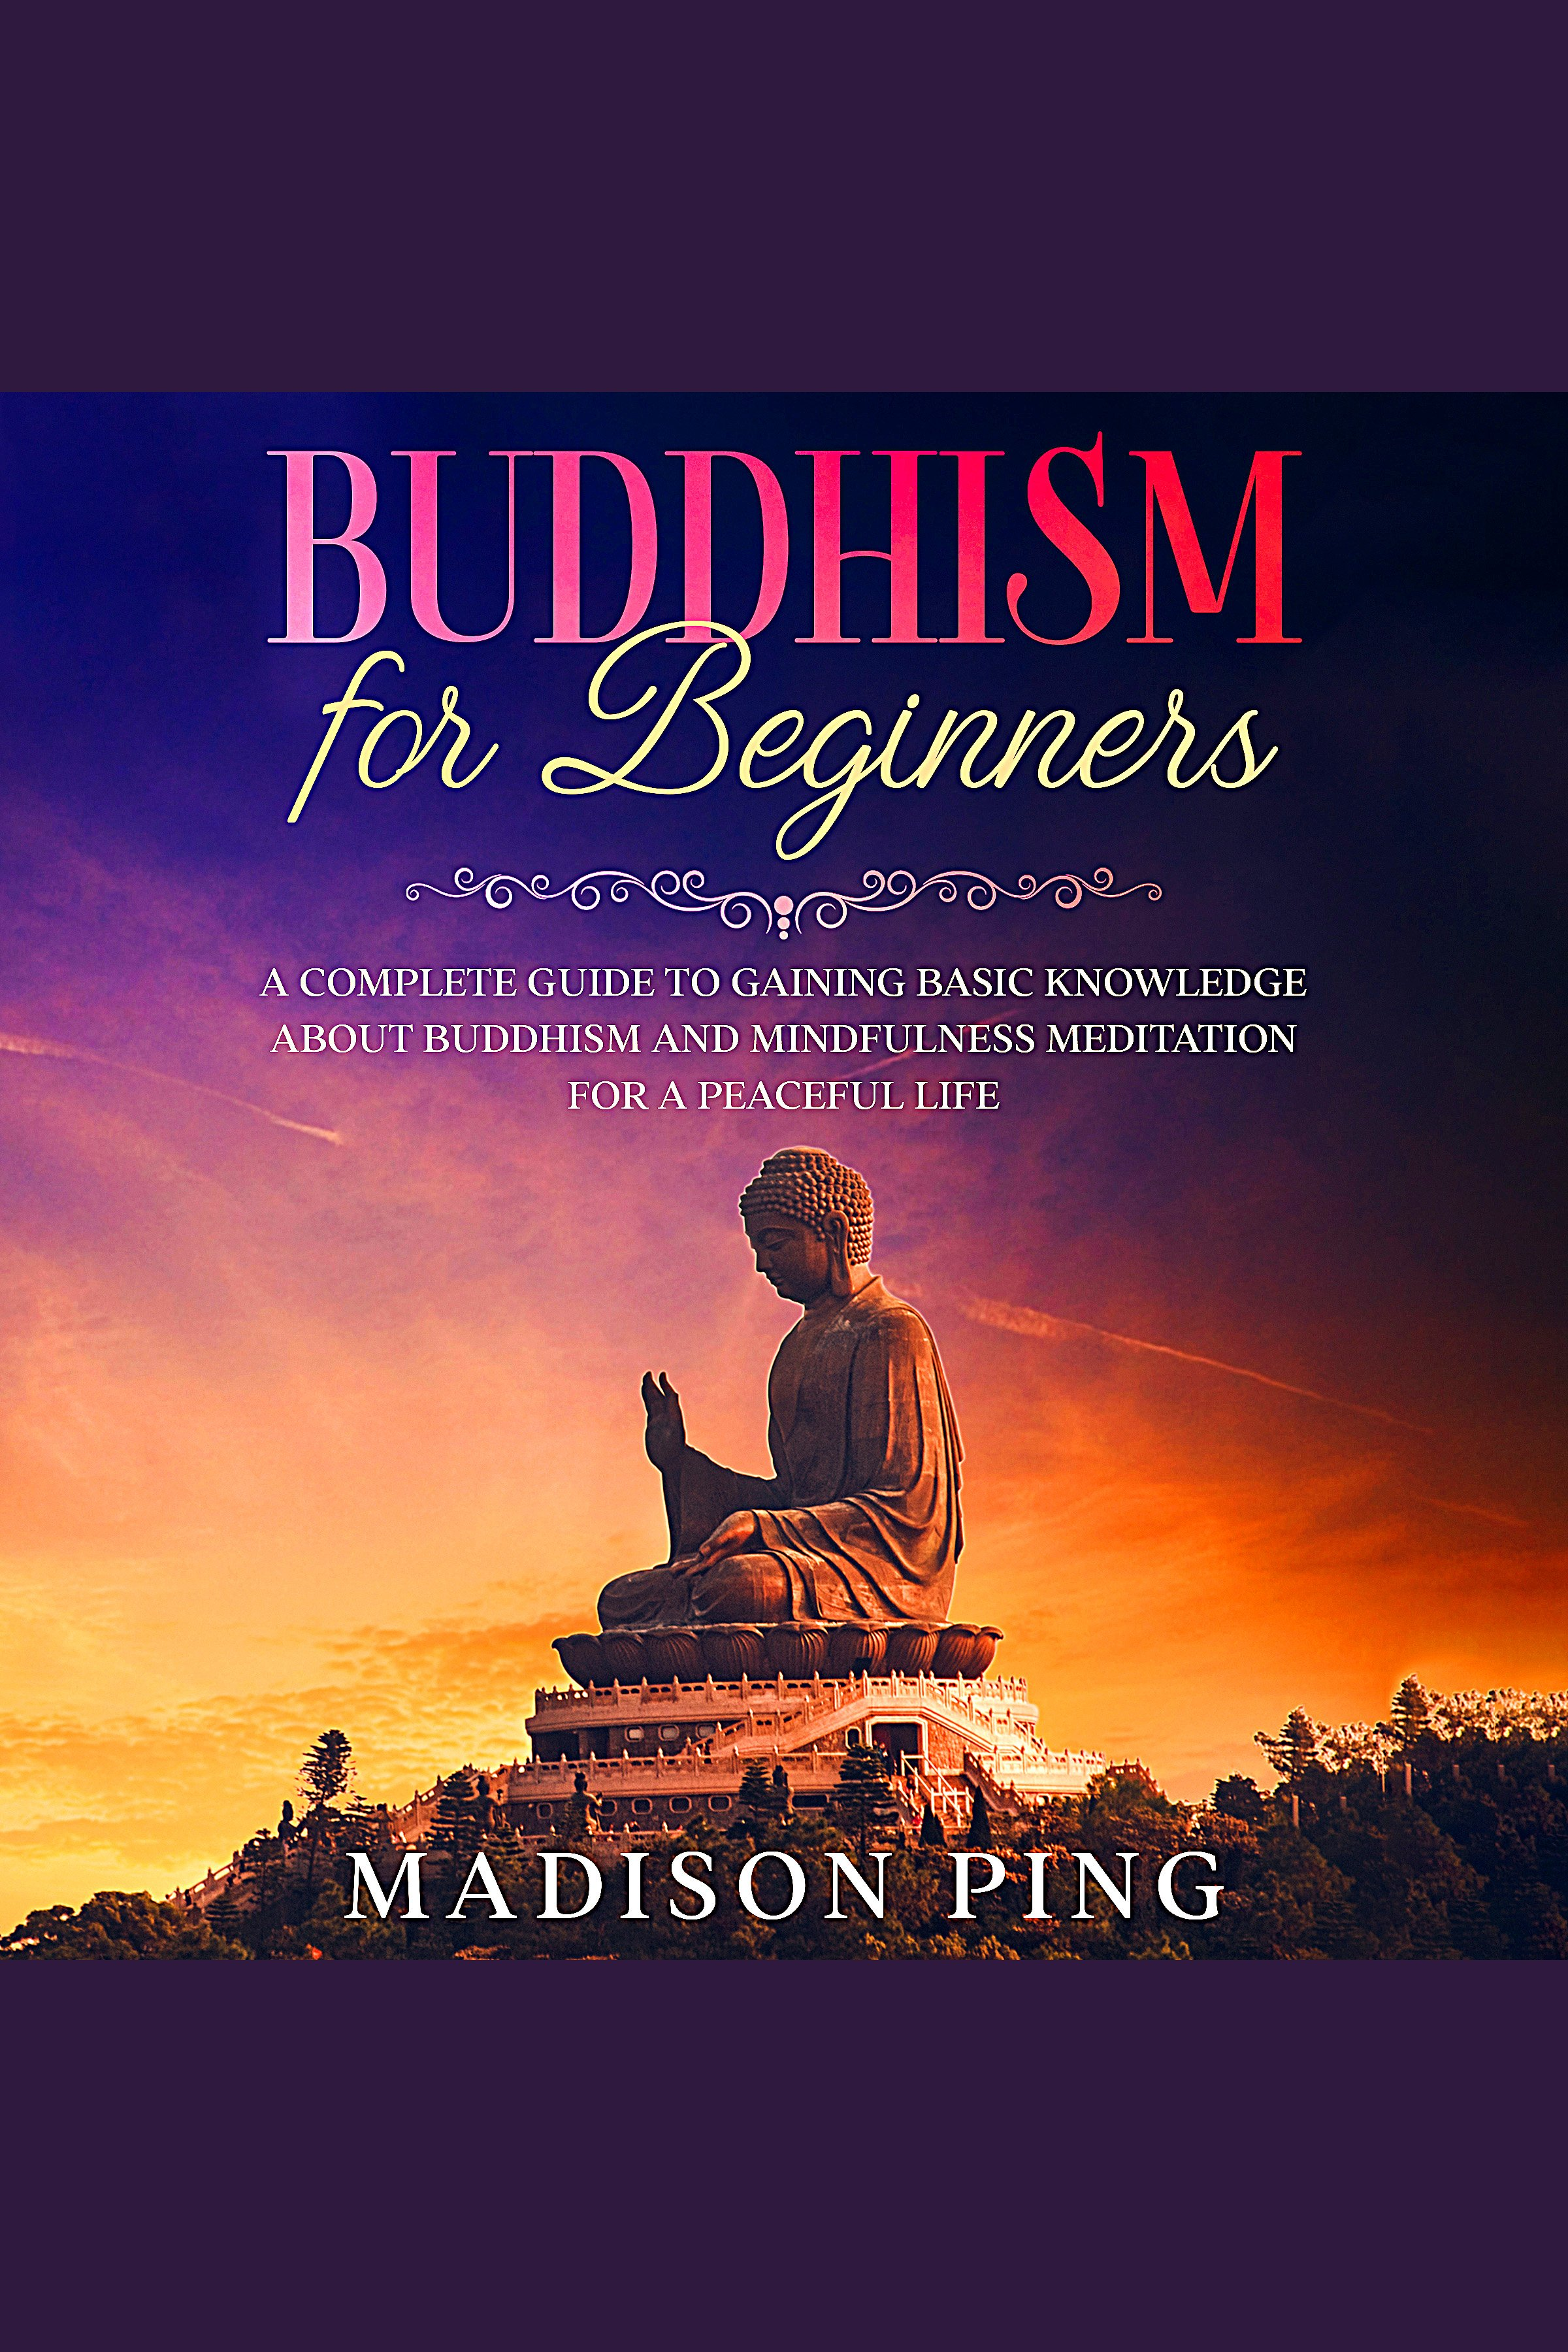 Buddhism for Beginners A Complete Guide to Gaining Basic Knowledge about Buddhism and Mindfulness Meditation for a Peaceful Life